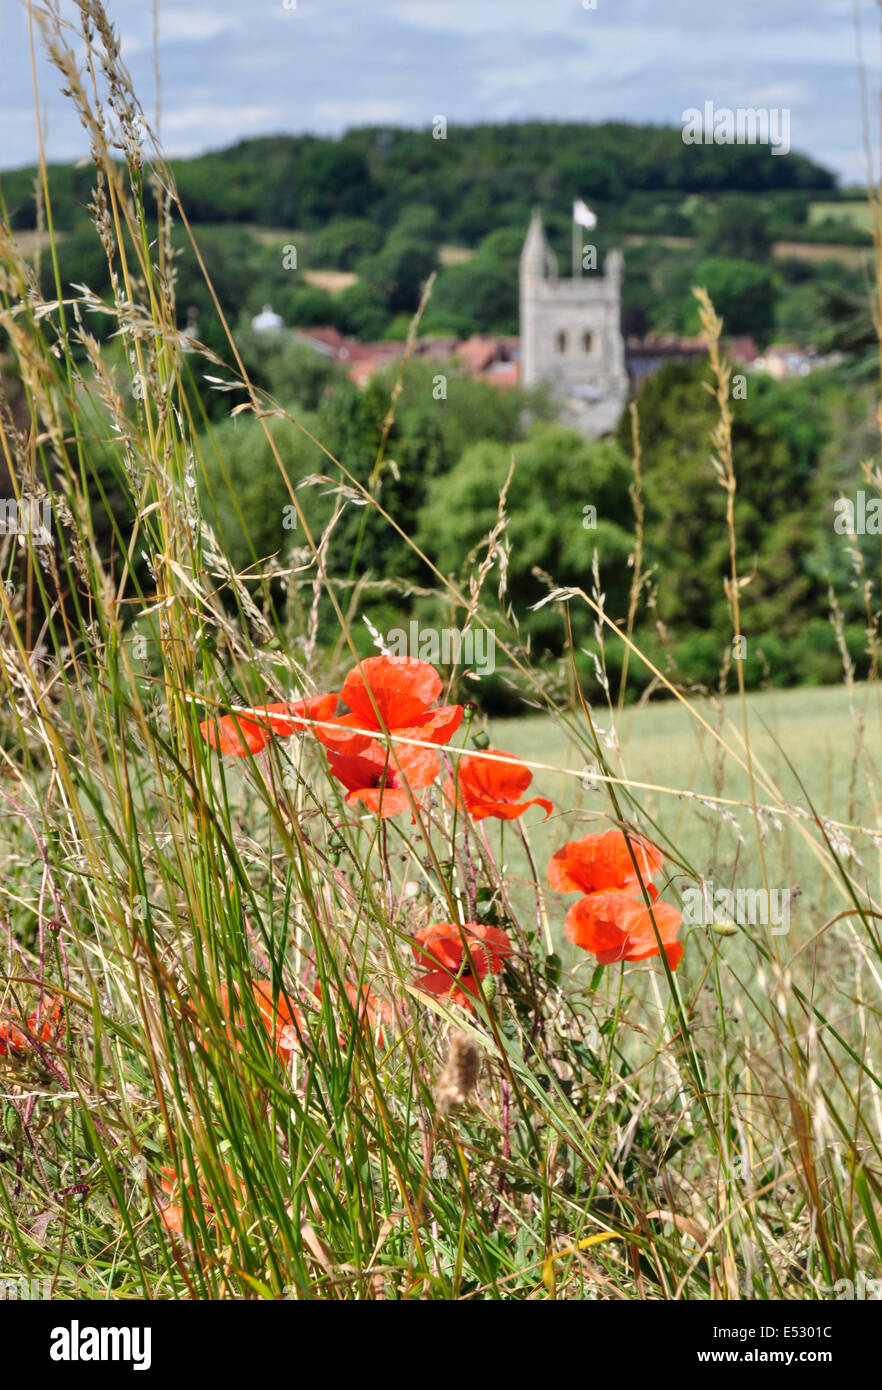 Bucks Chiltern Hills above Old Amersham - scarlet poppies - amid long grass - soft focus backdrop - church tower - Stock Image